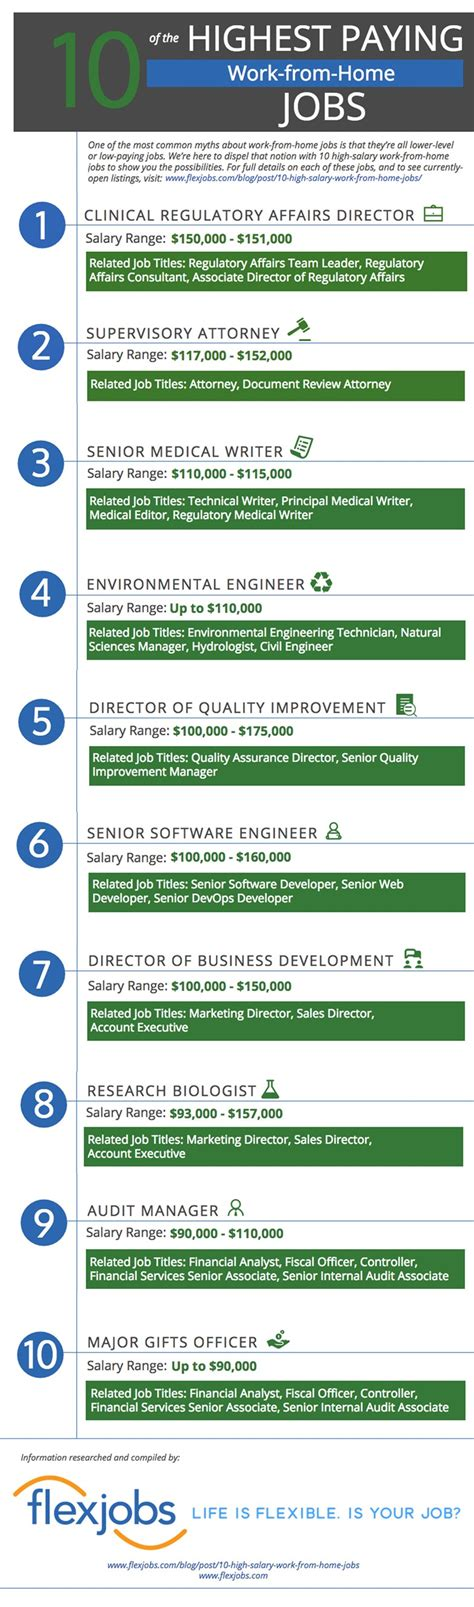 10 Highest Paying Accounting Careers For Mba S by Infographic 10 Of The Highest Paying Work From Home